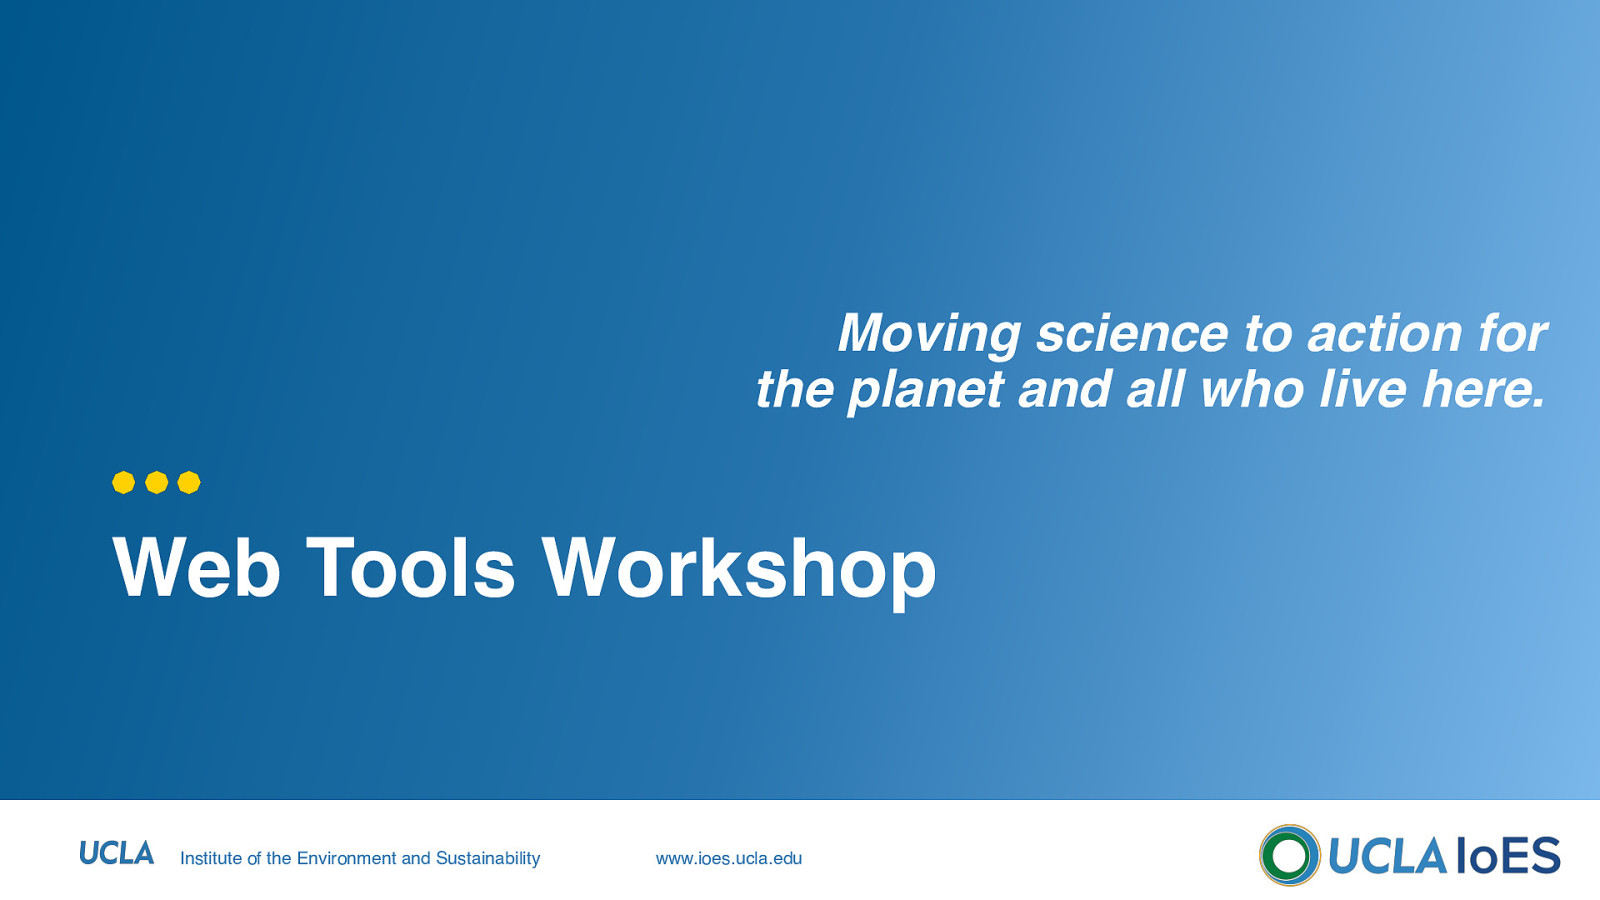 UCLA IoES Web Tools workshop